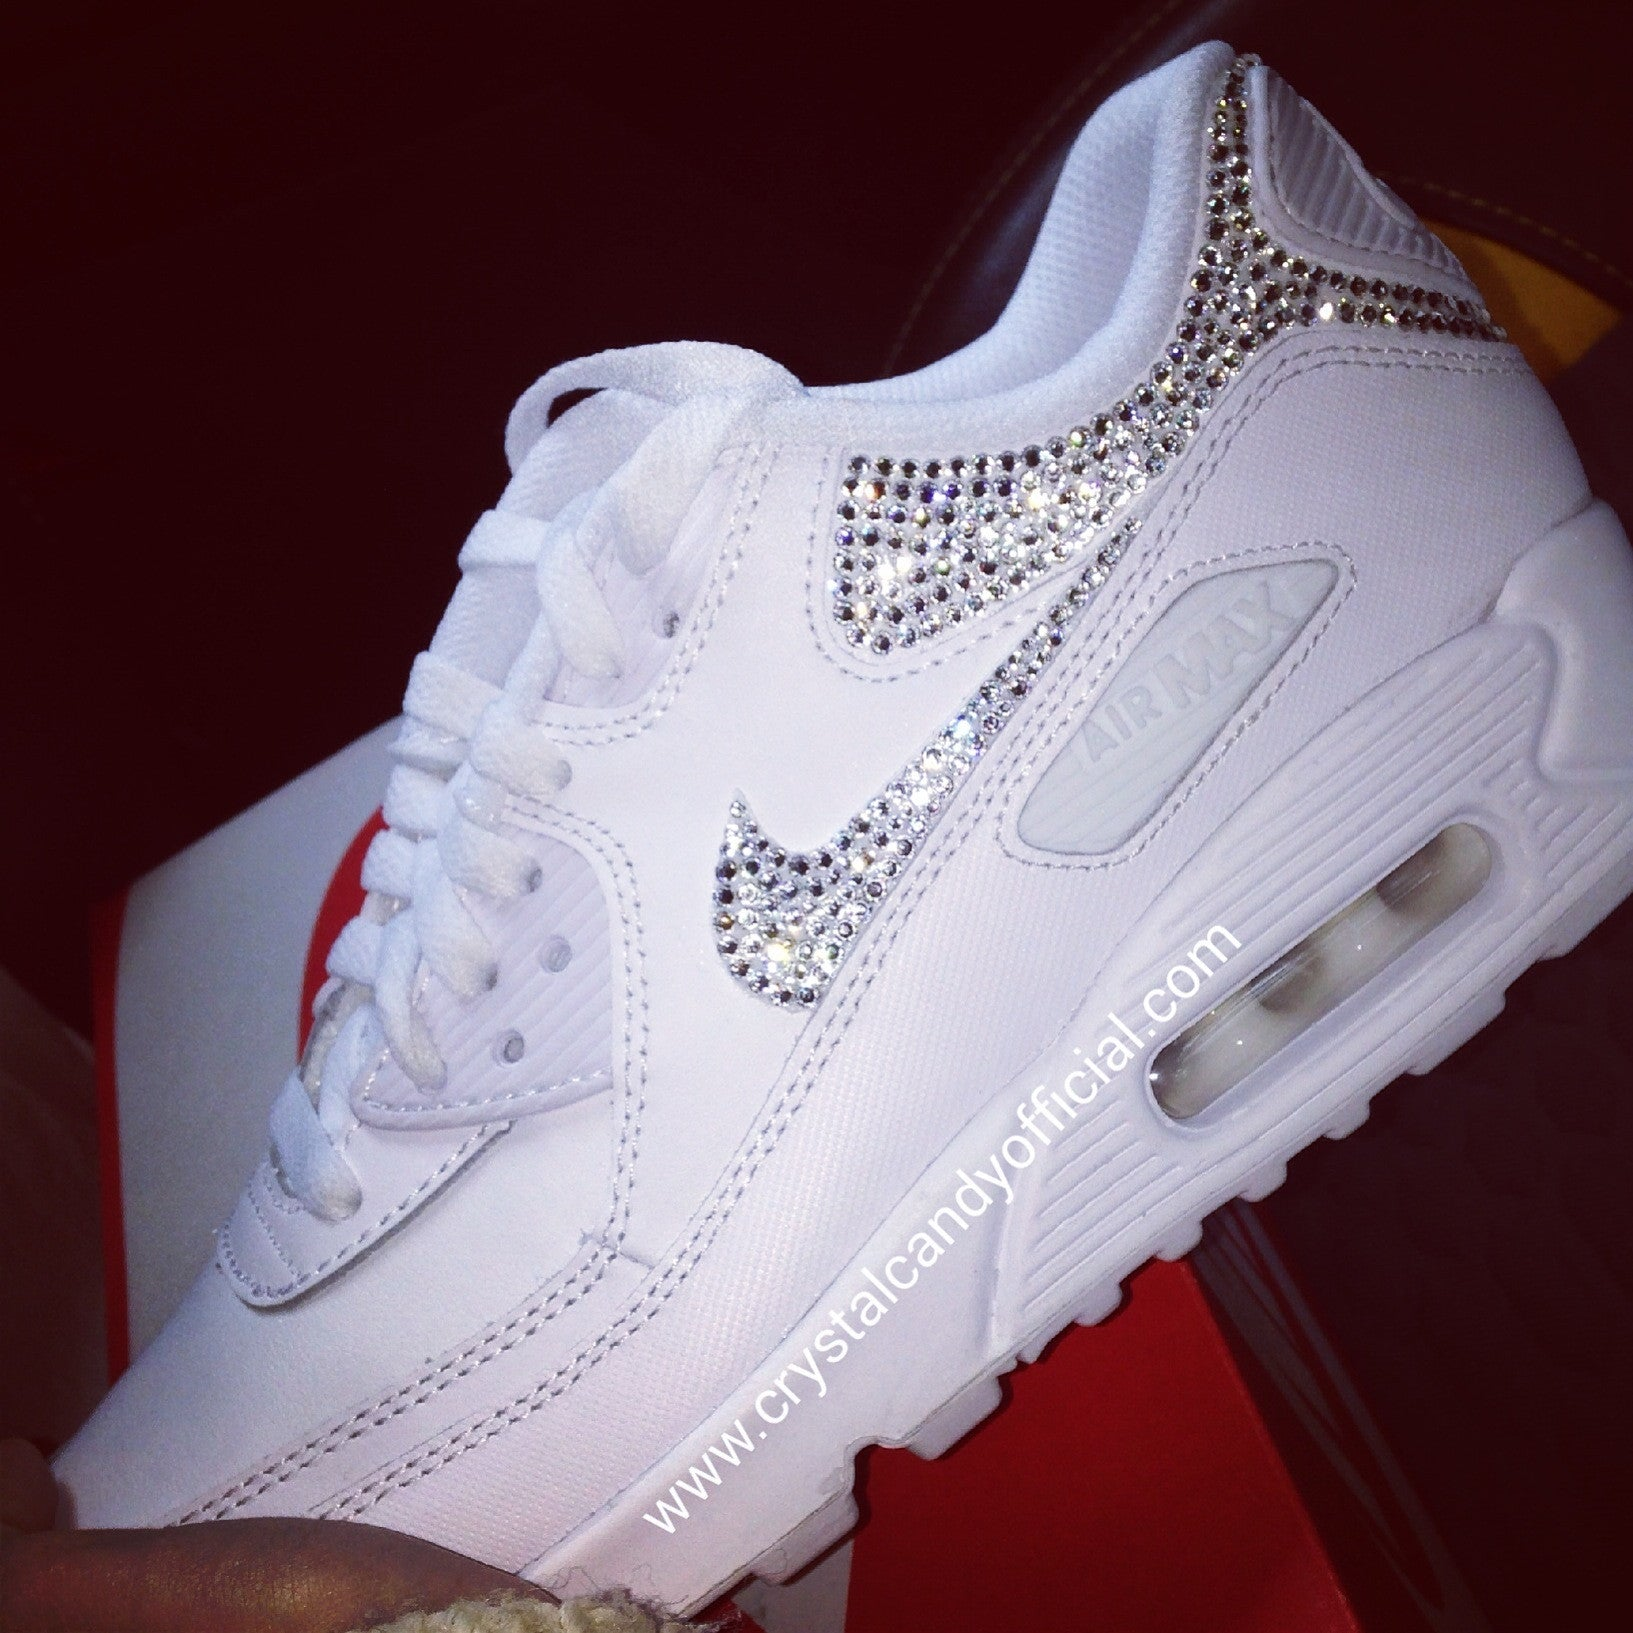 nouvelle ml574 quilibre homme - Crystal Nike Air Max 90's - Crystal Candy Limited